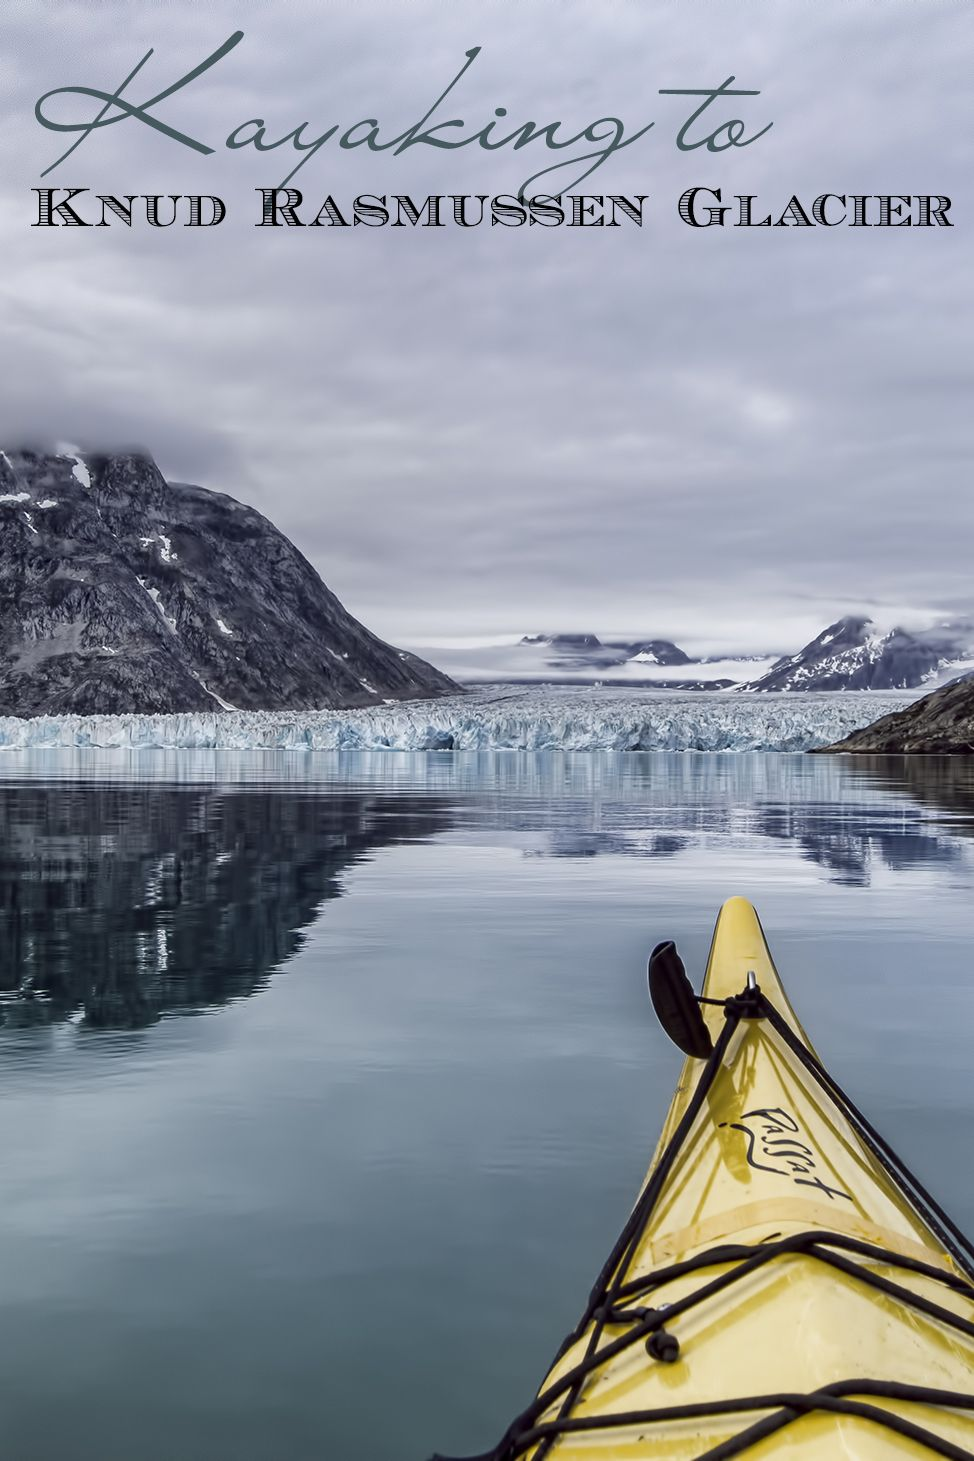 Our End At The Knud Rasmussen Glacier Greenland